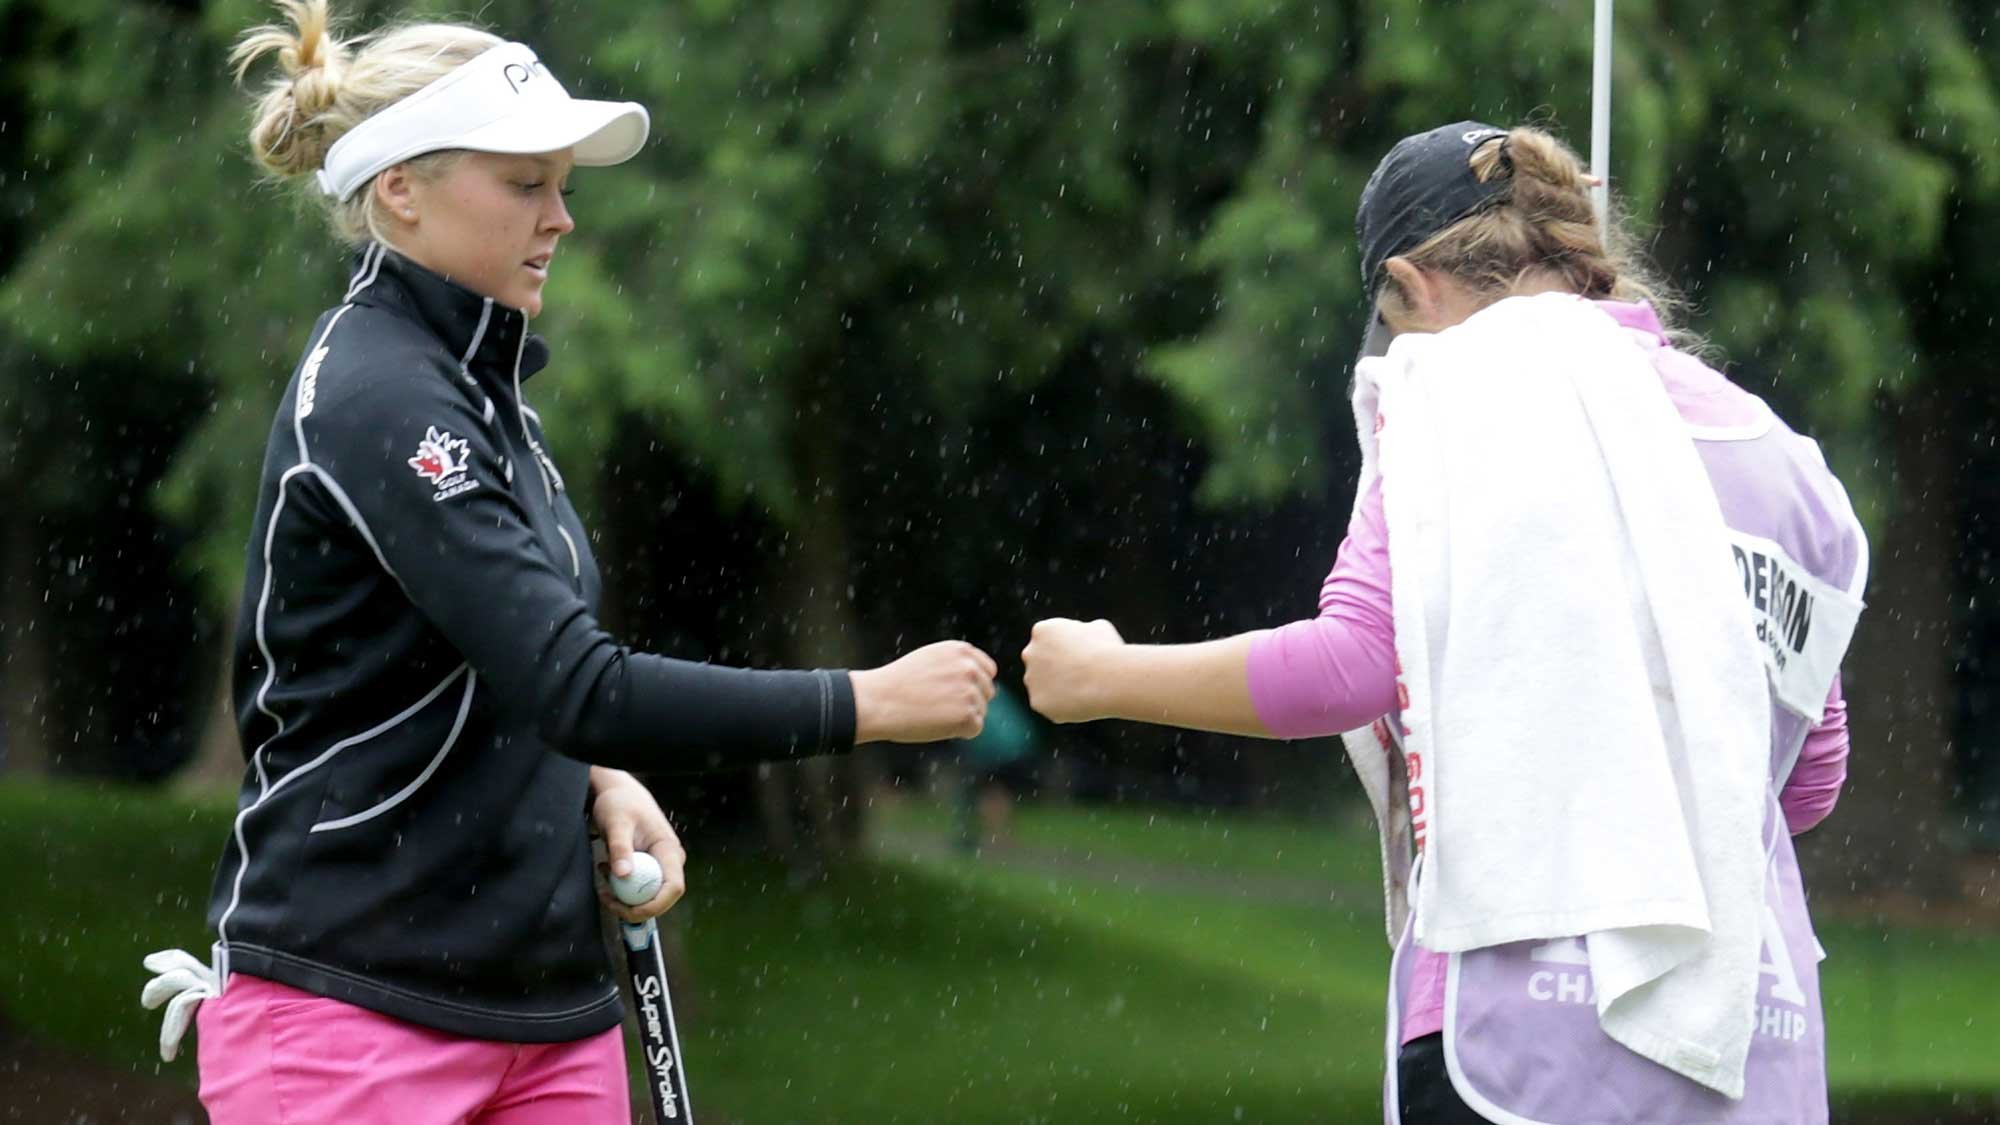 Brooke Henderson of Canada is congratulated by her sister/caddie Brittany after making a birdie putt on the ninth hole during the first round of the KPMG Women's PGA Championship